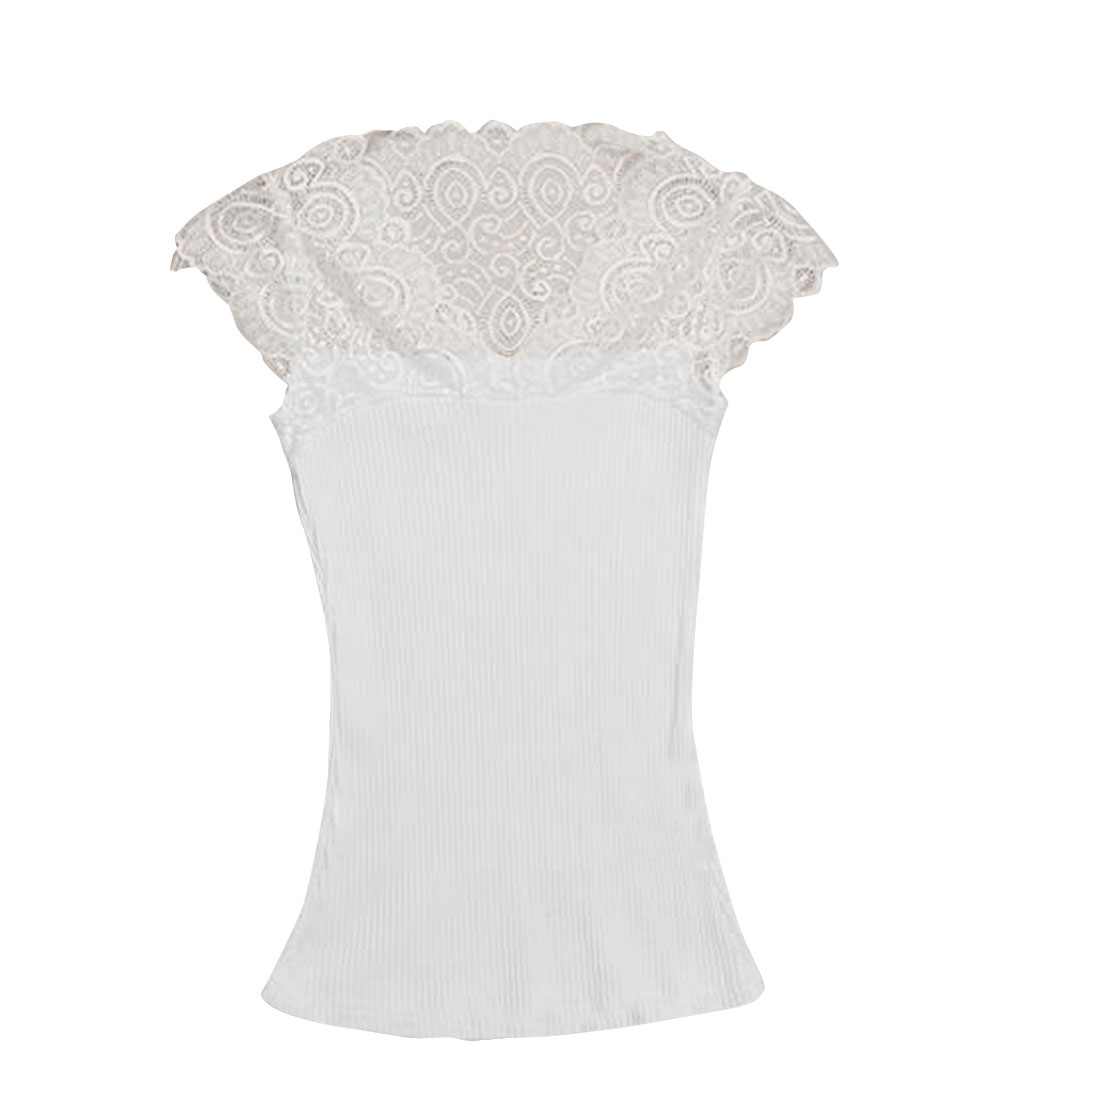 Lady Lace Detail Decor Cap Sleeve Ribing Fitted White Blouse XS